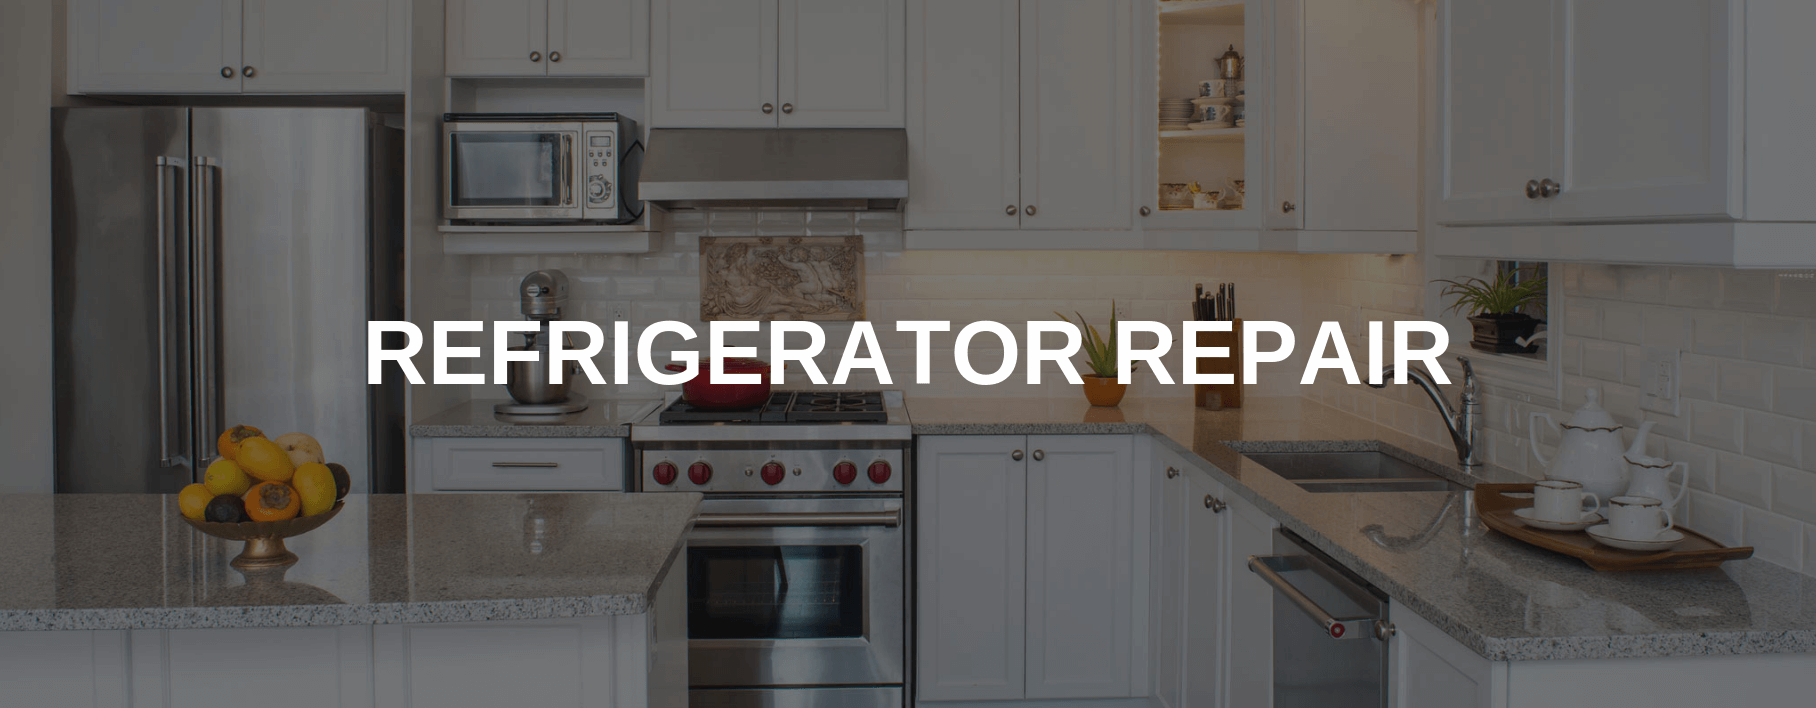 garland refrigerator repair